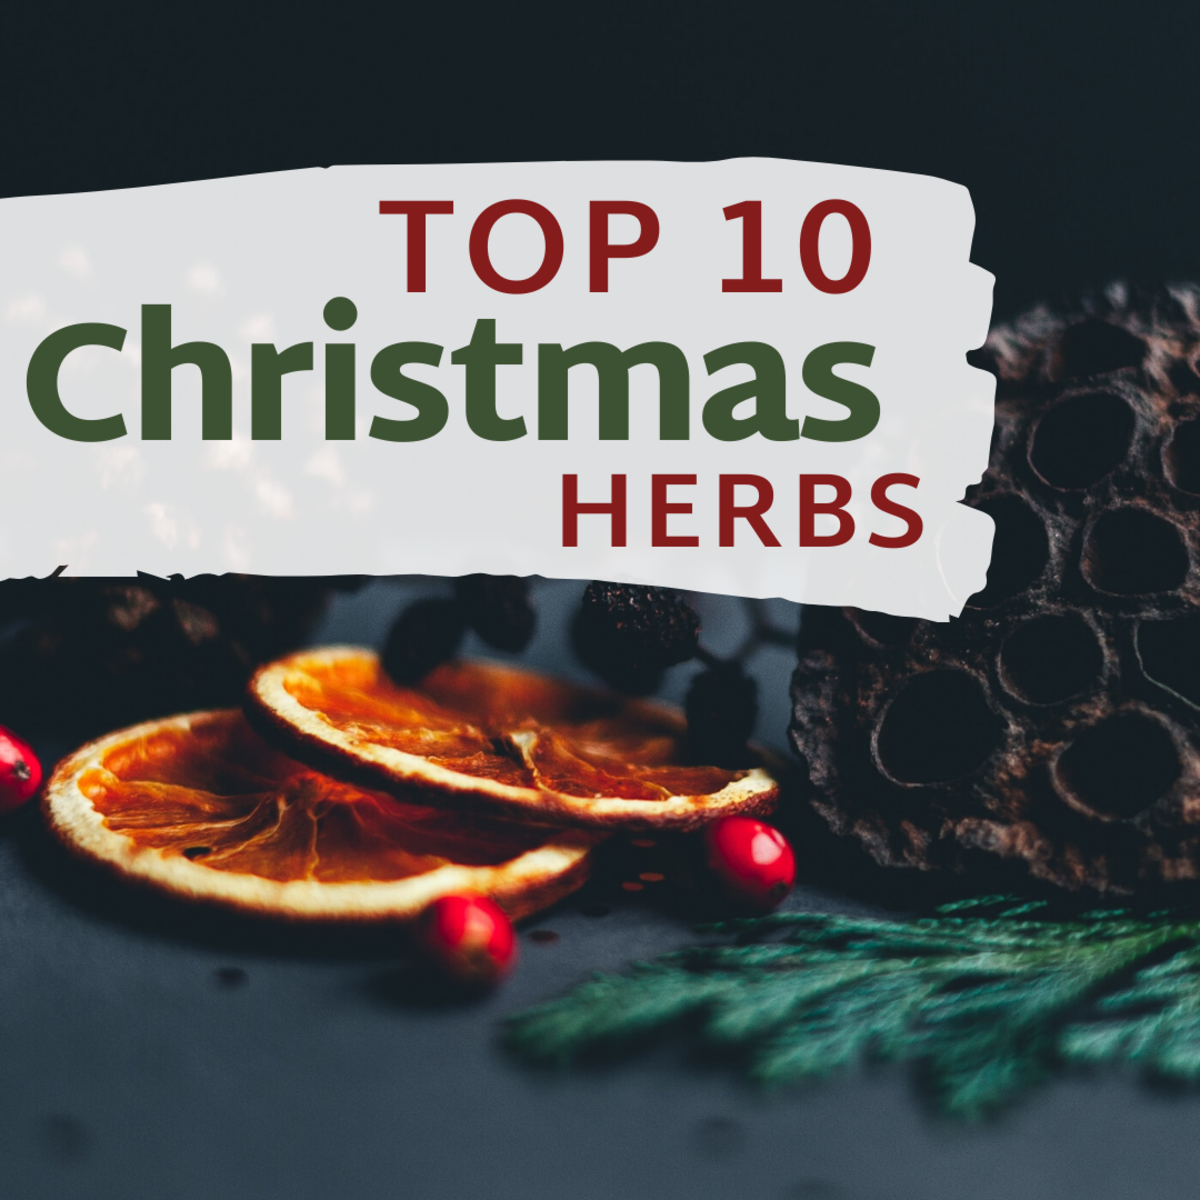 Top 10 Christmas Herbs and Spices